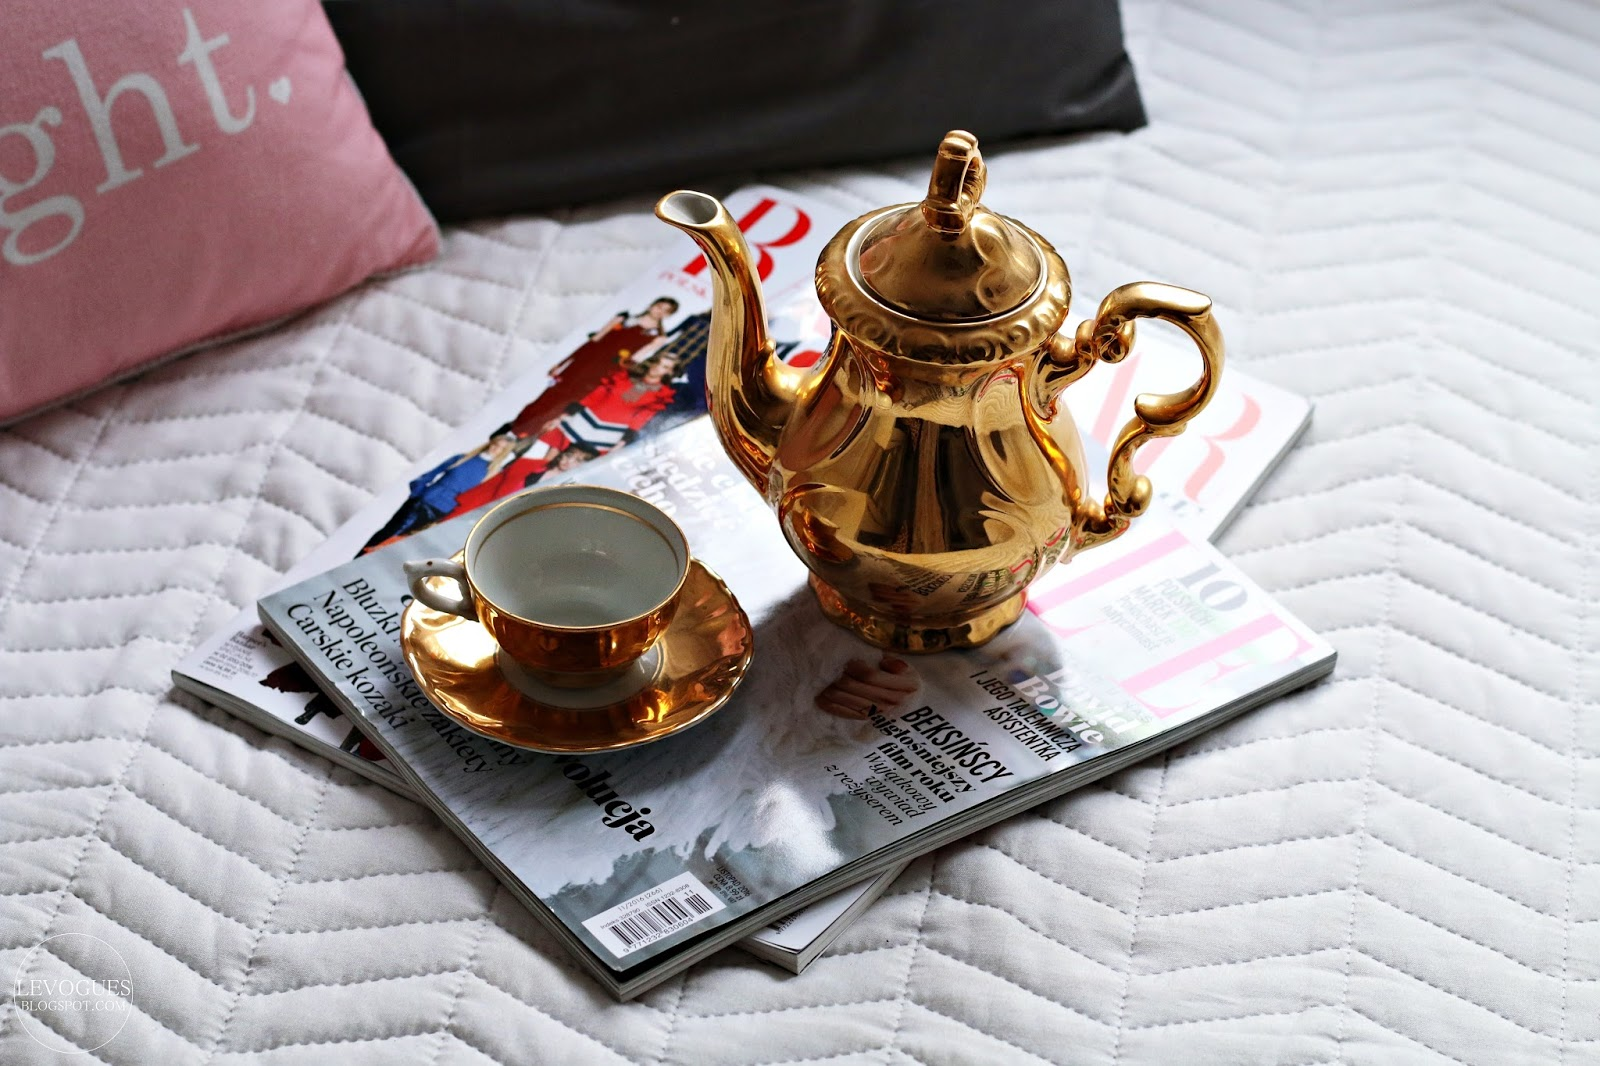 LEVOGUES: FAVOURITE THINGS IN MY ROOM+INSPIRATIONS